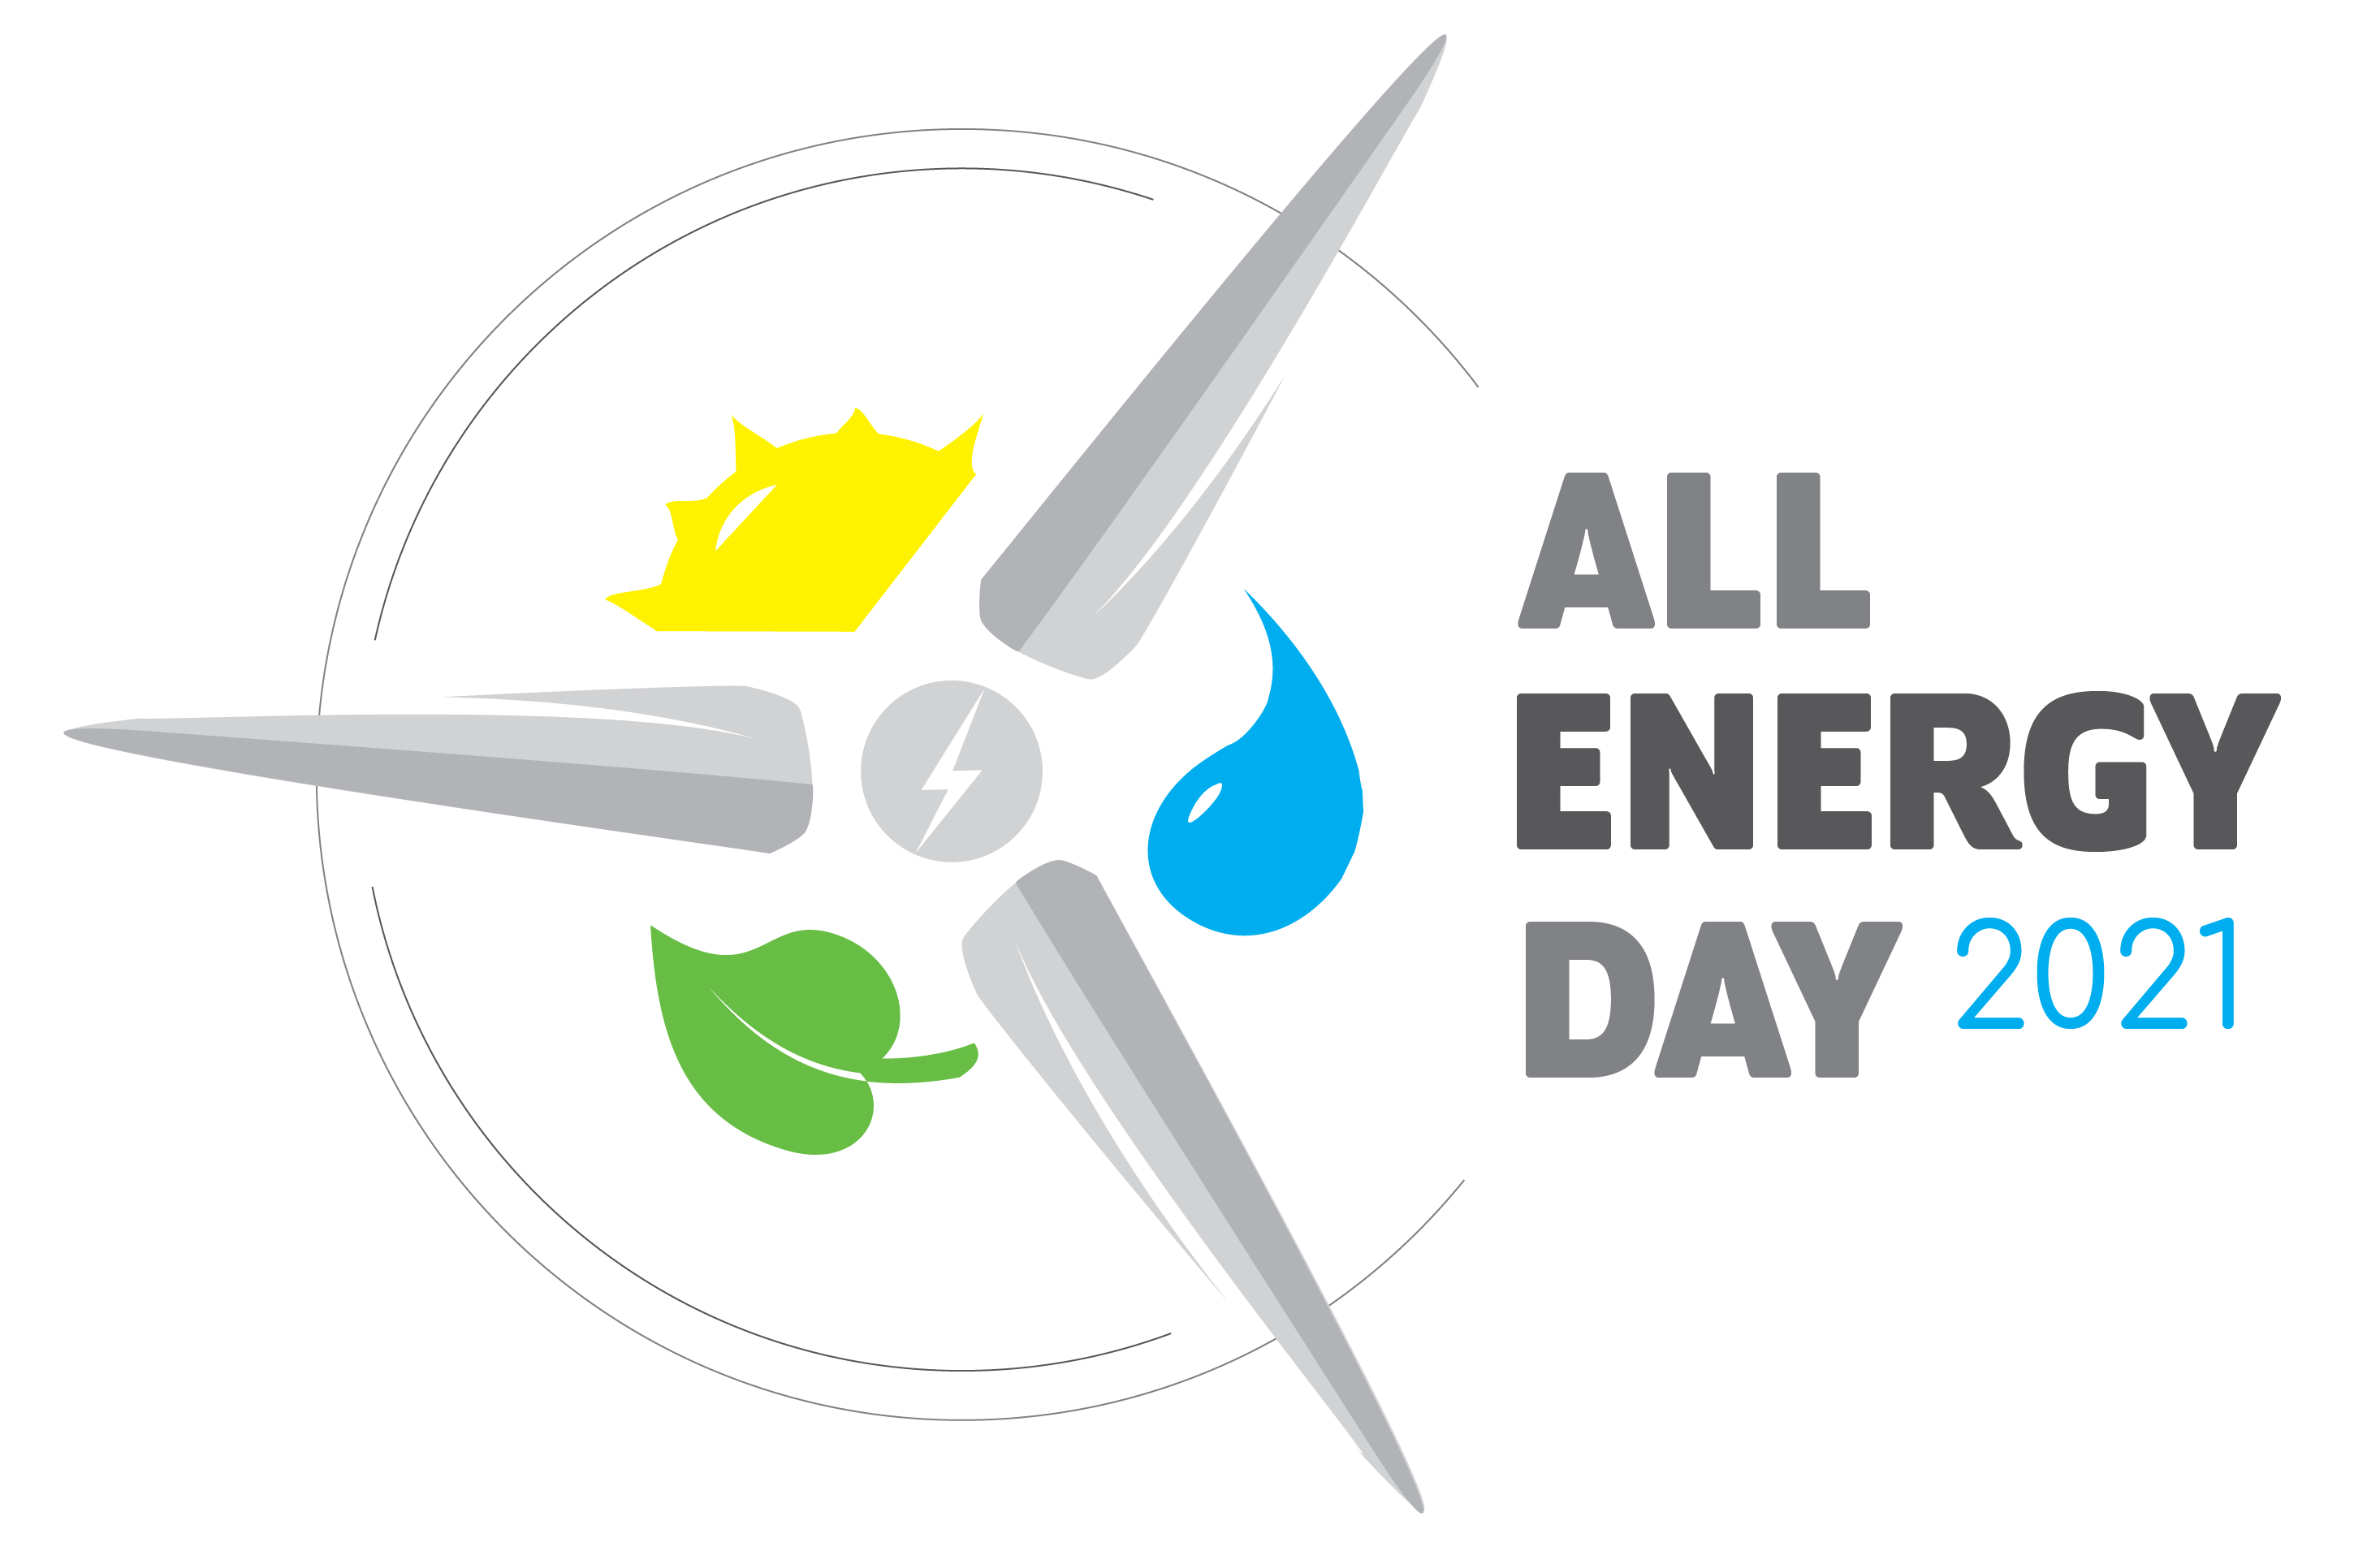 All Energy Day